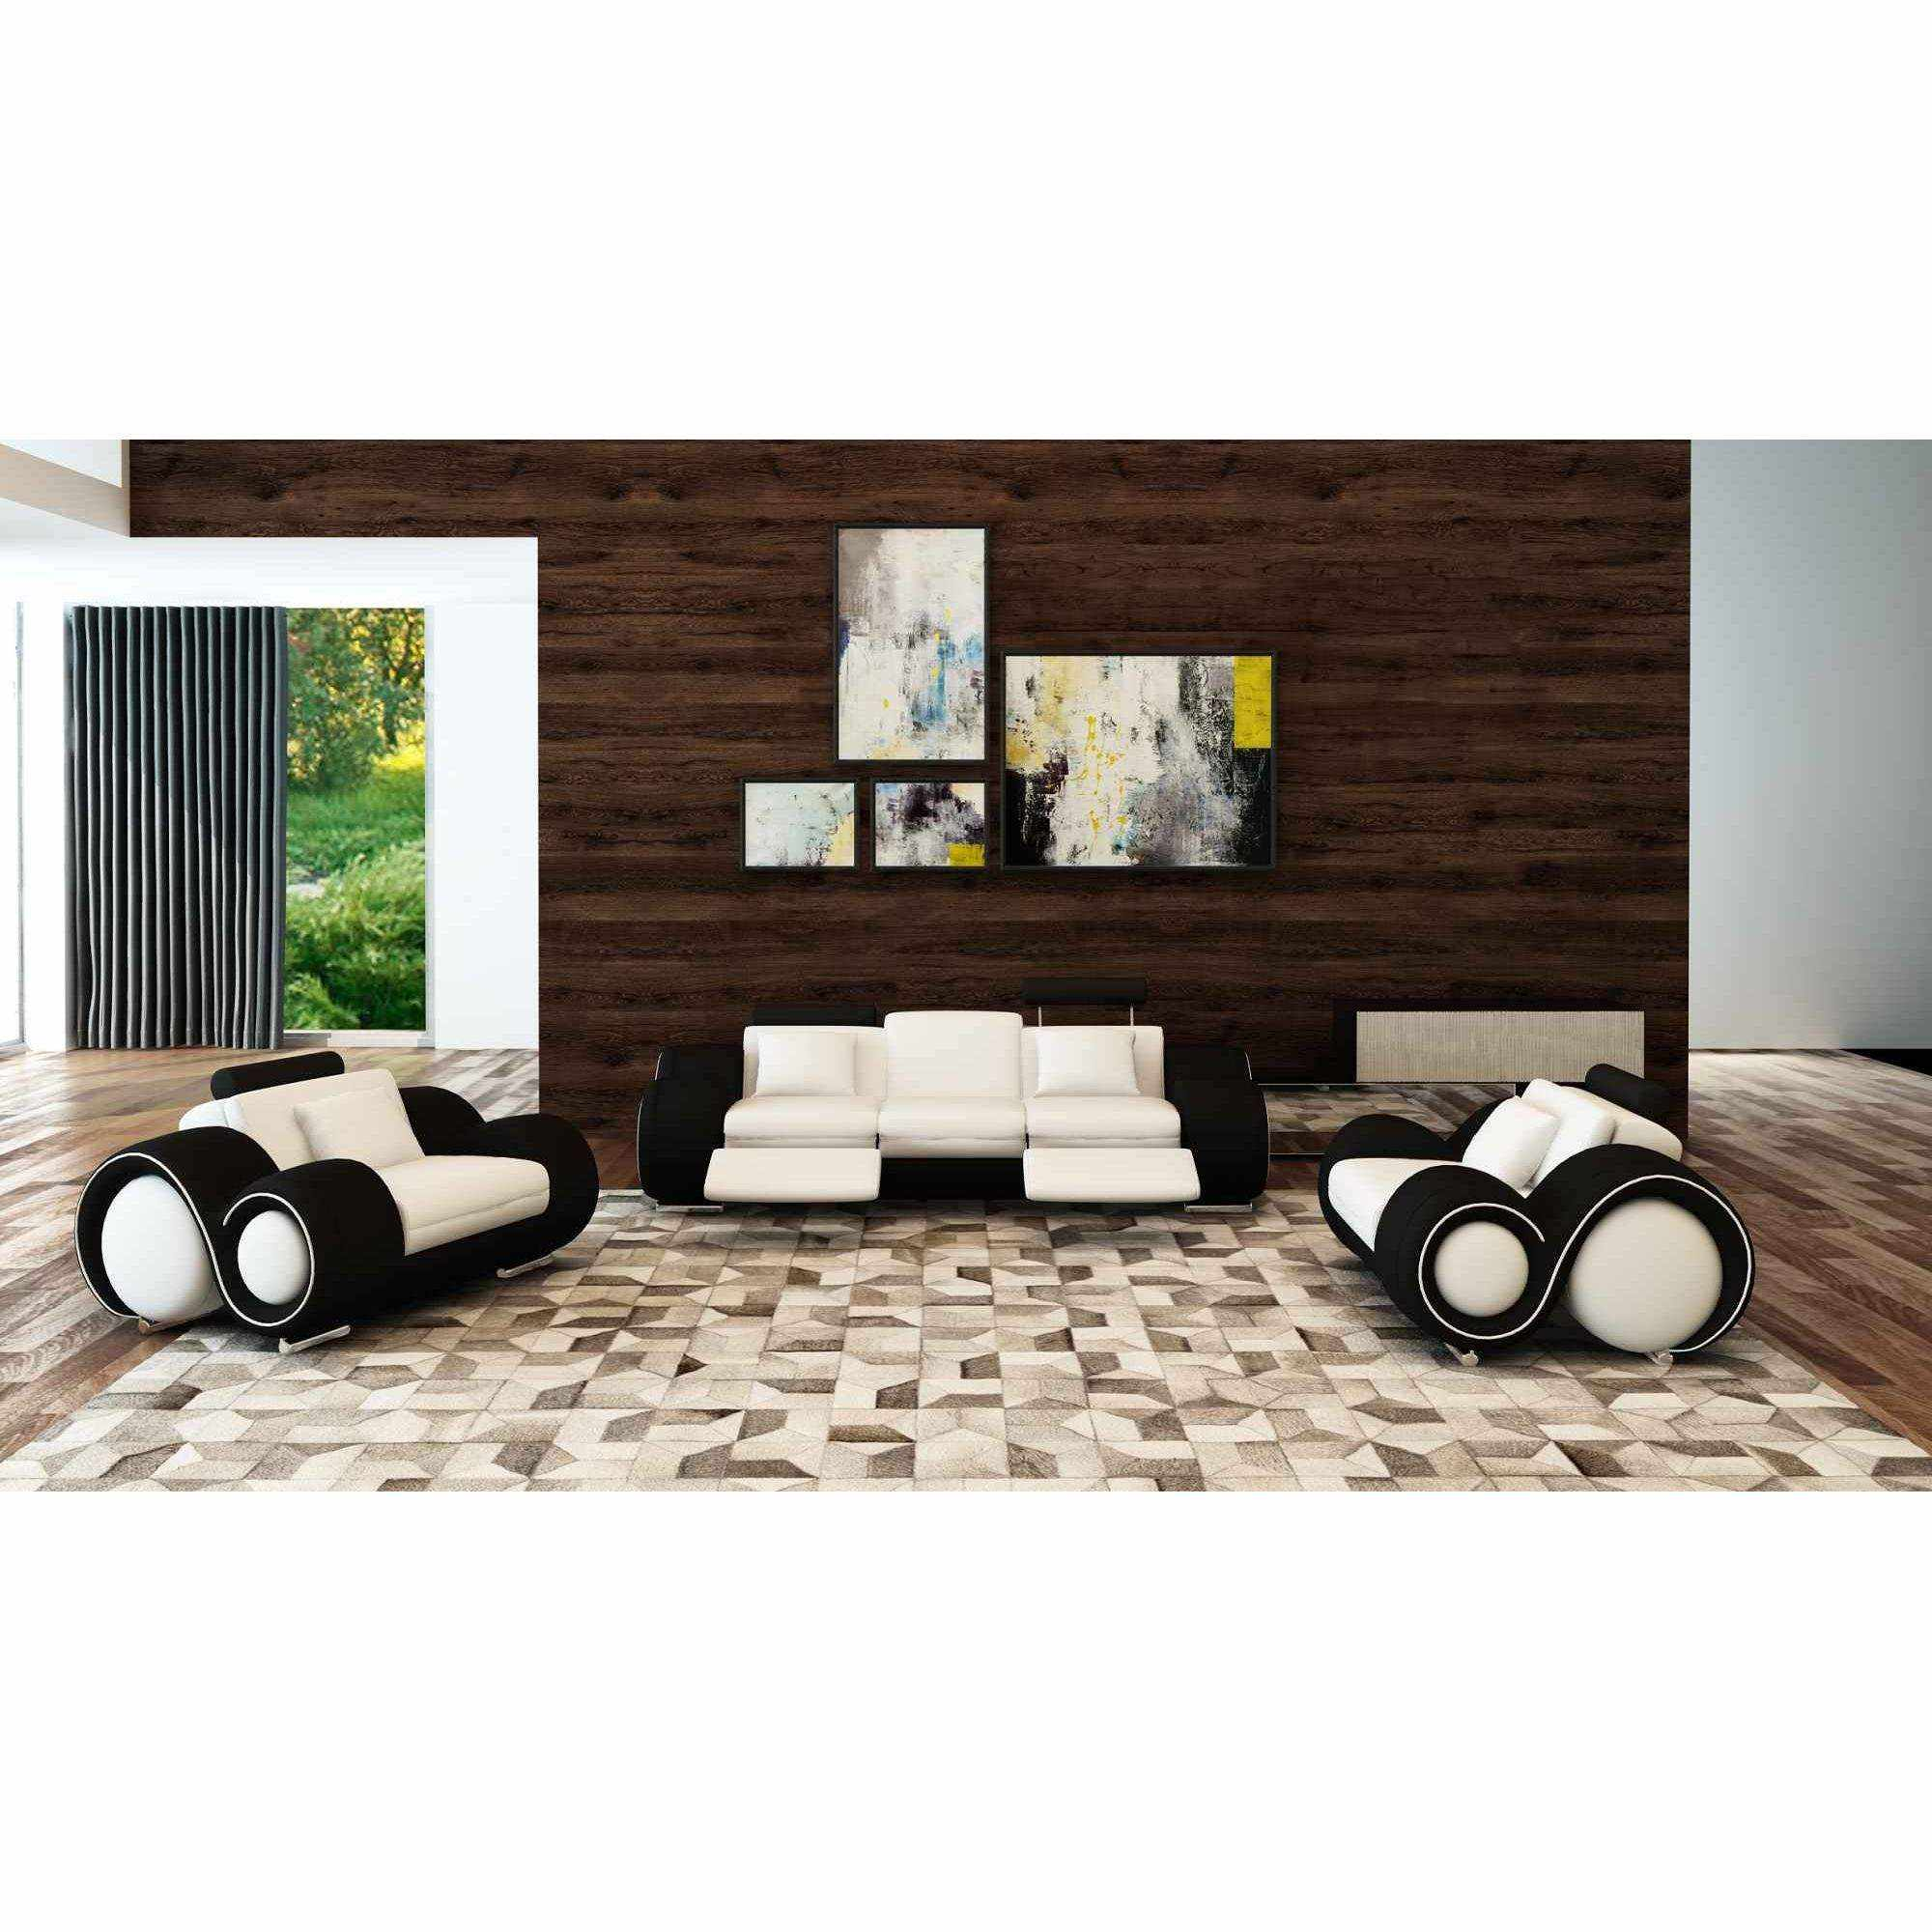 Deco in paris ensemble canape relax design 3 2 1 places - Canape design noir et blanc ...